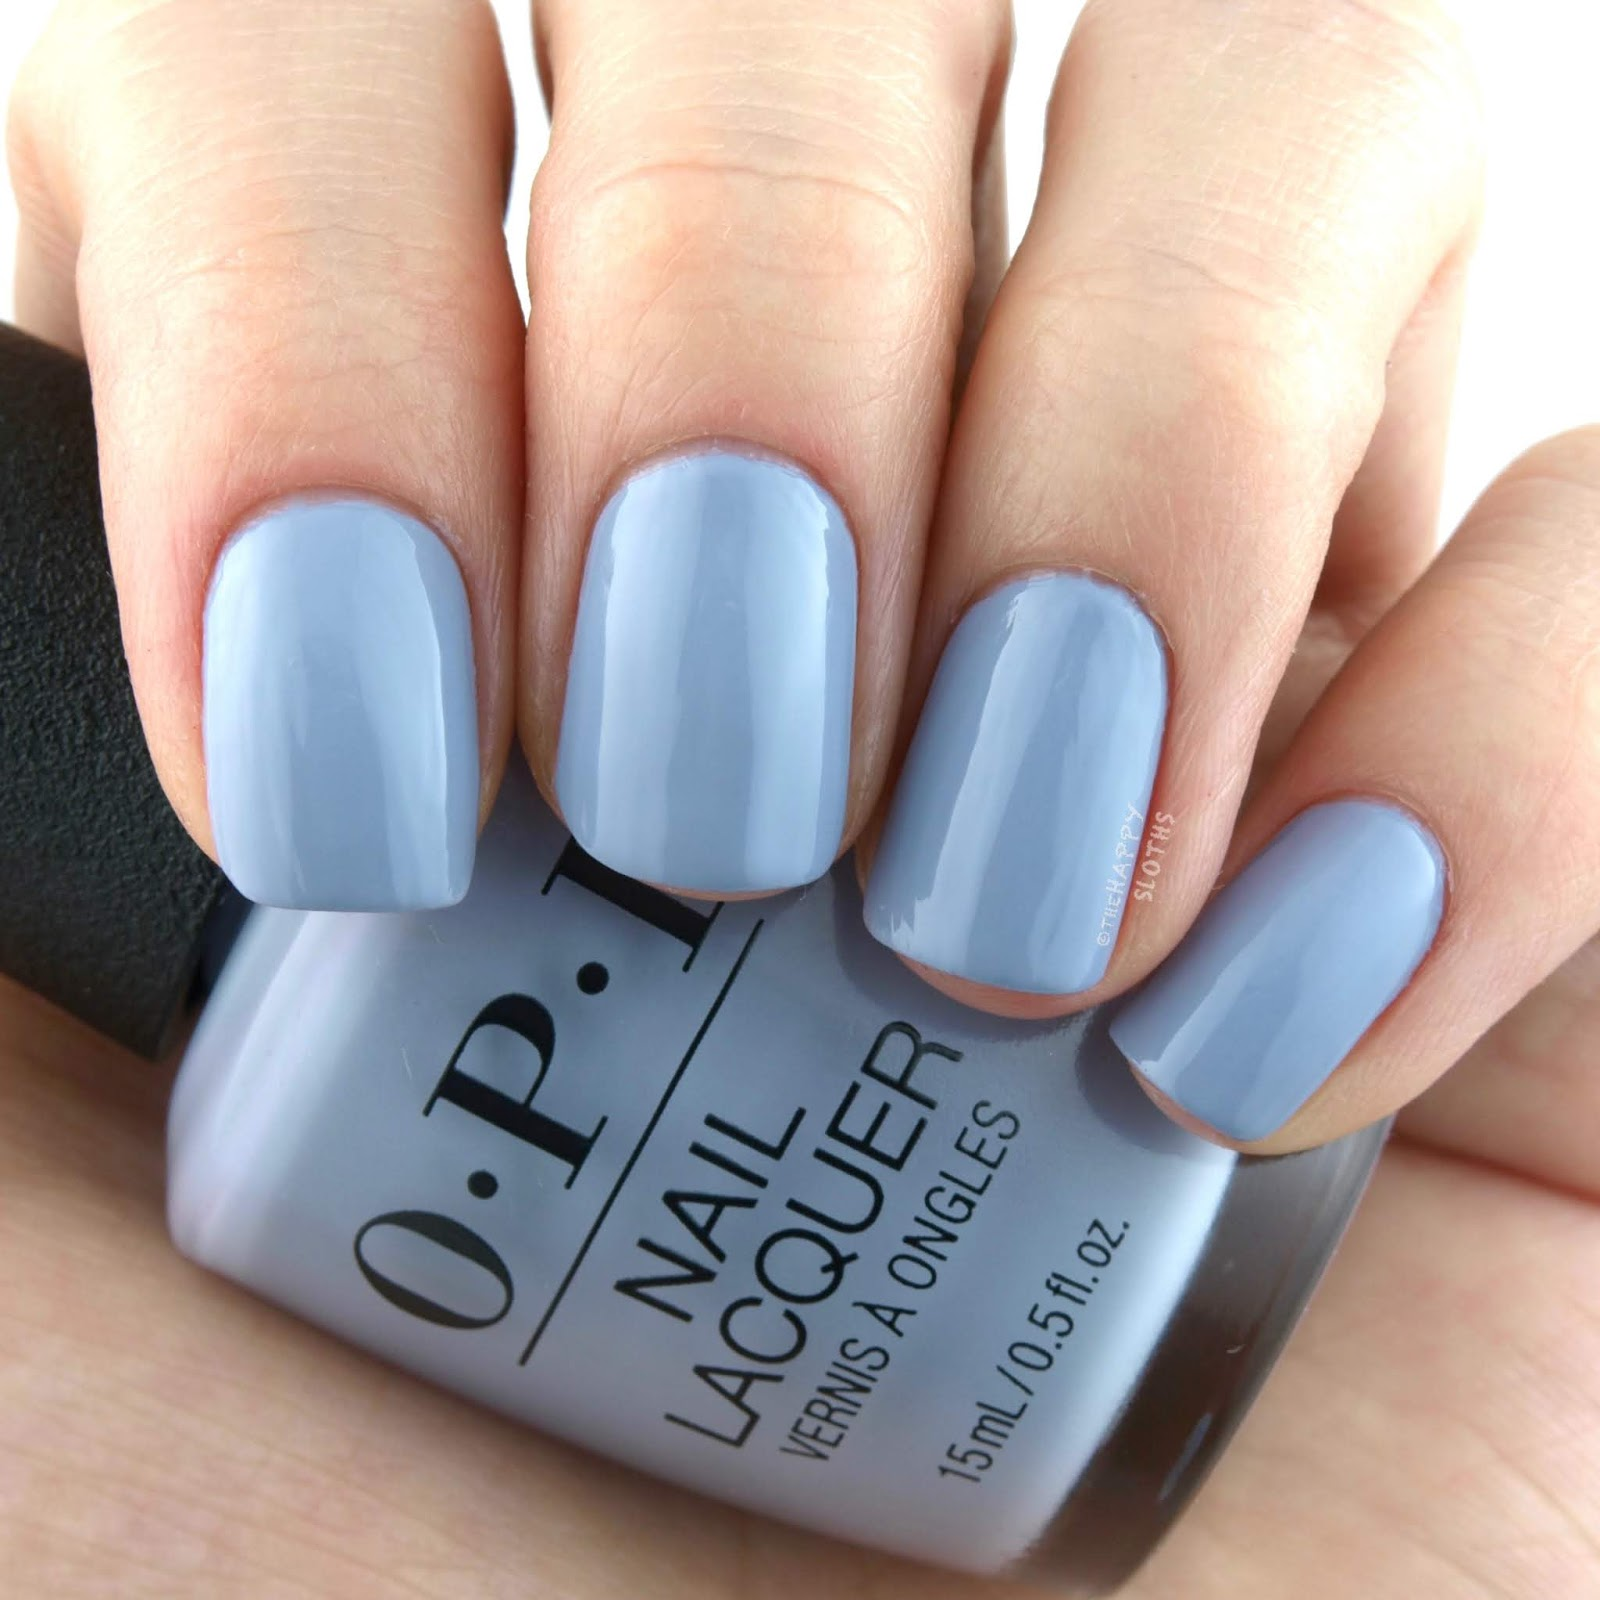 OPI Spring 2019 Tokyo Collection | Kanpai OPI!: Review and Swatches